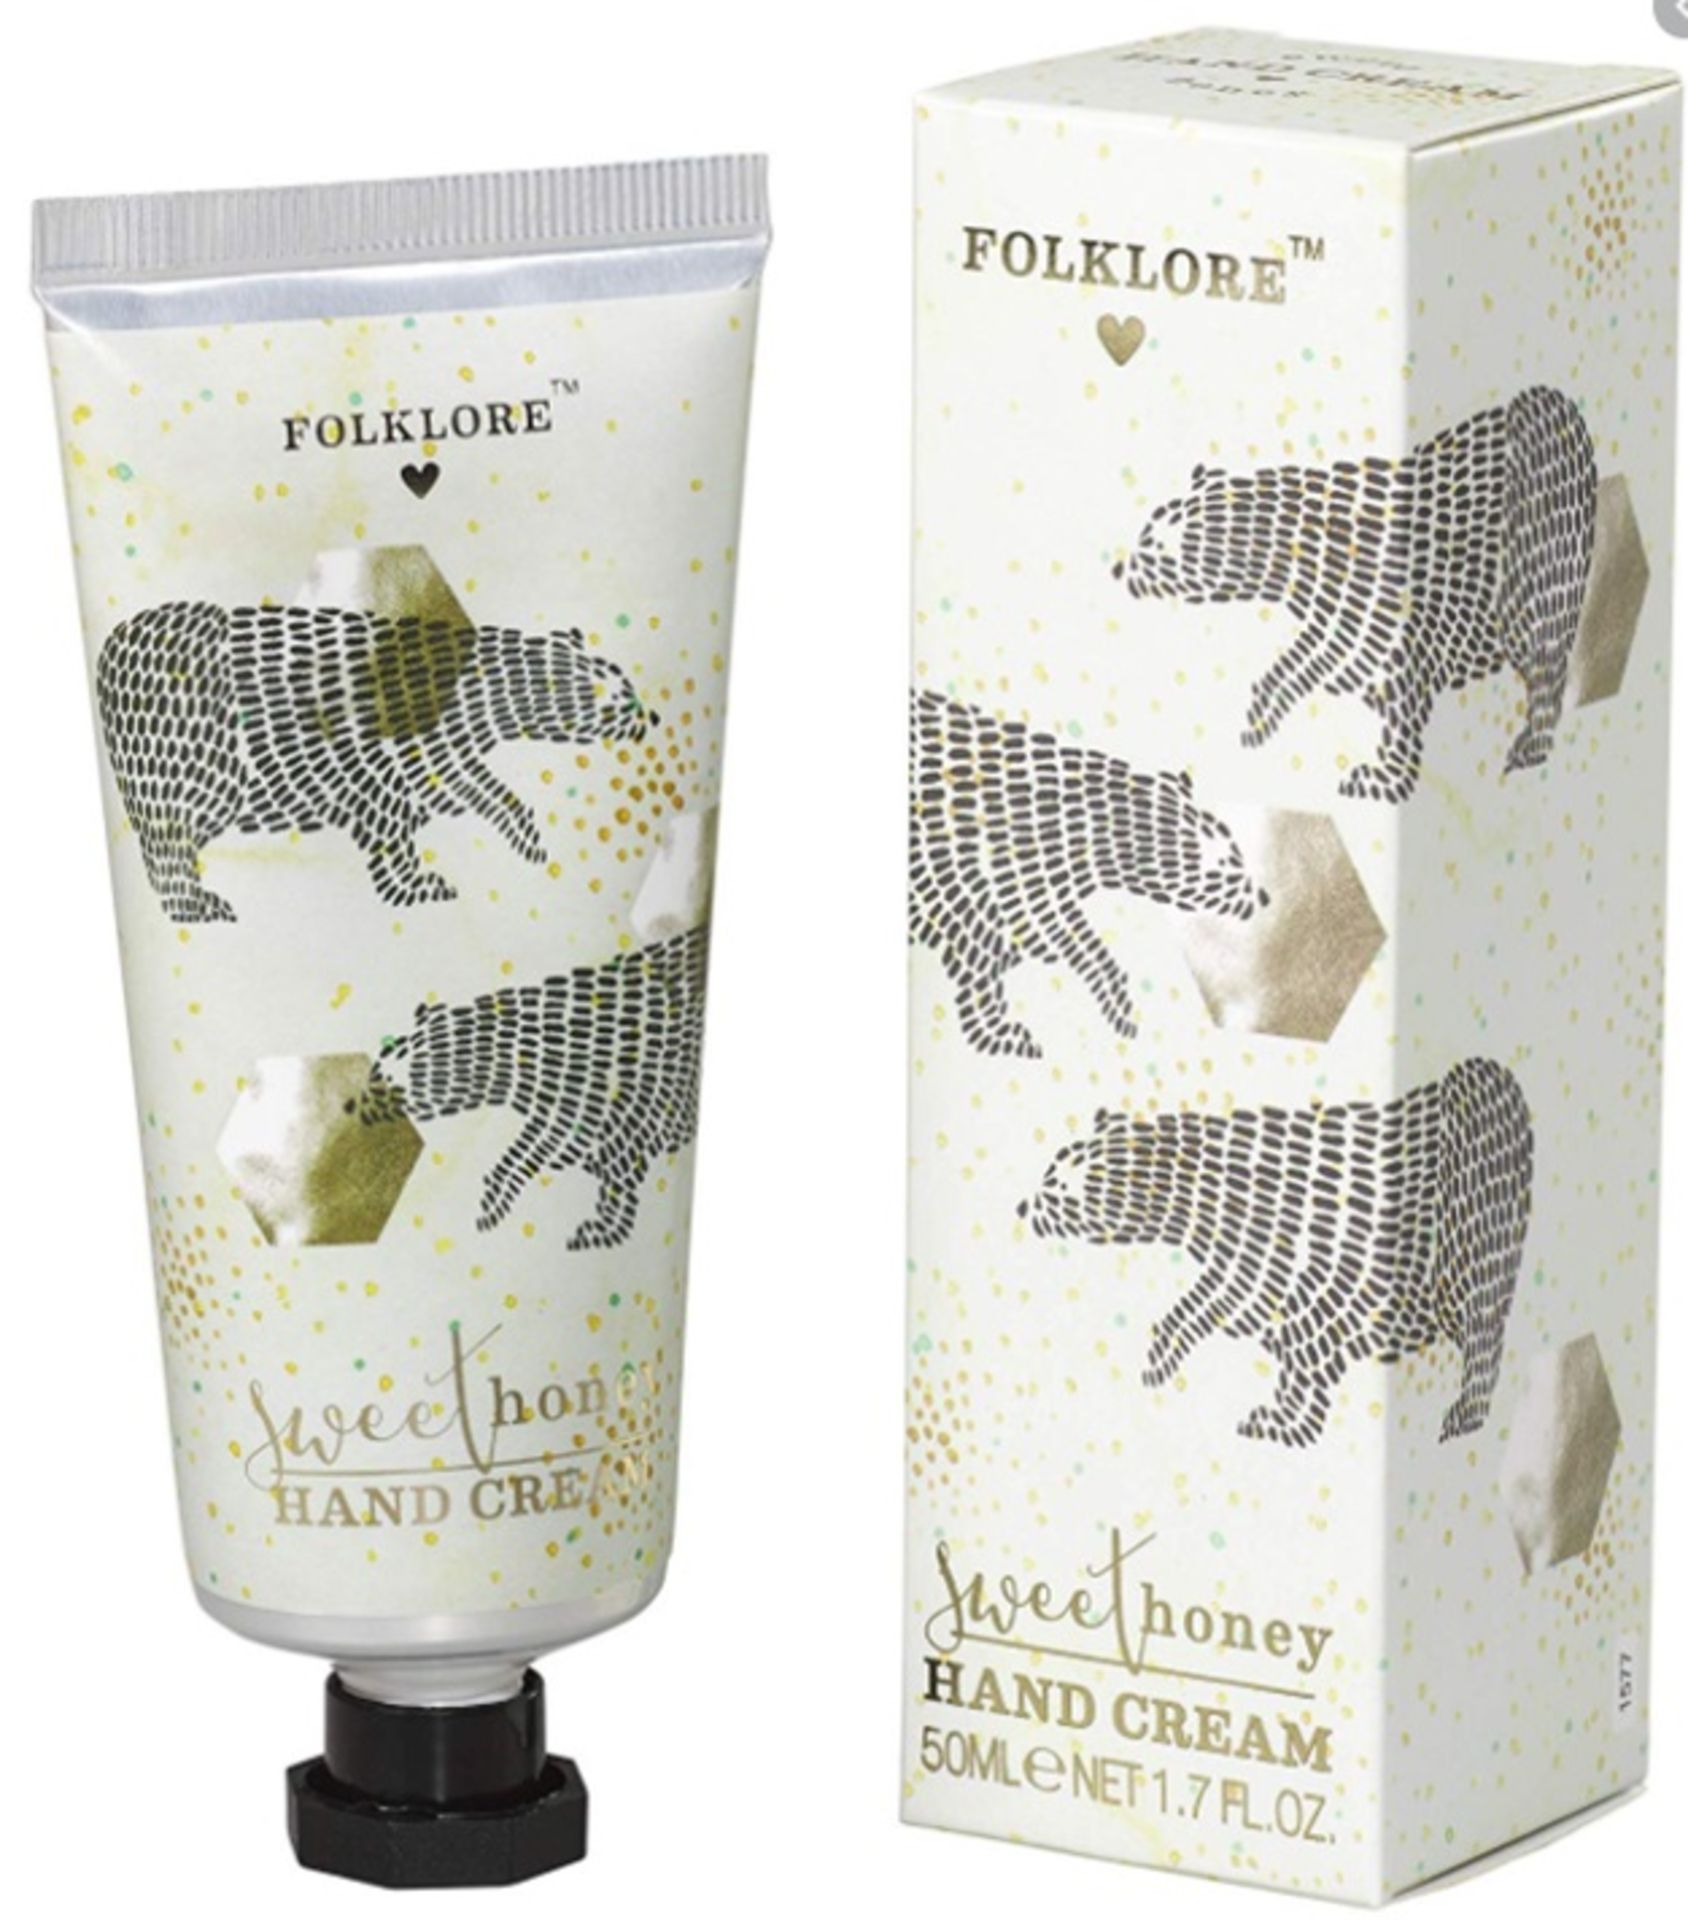 100 x Various Folklore Handcream | 50ml | Total RRP £899 - Image 4 of 4